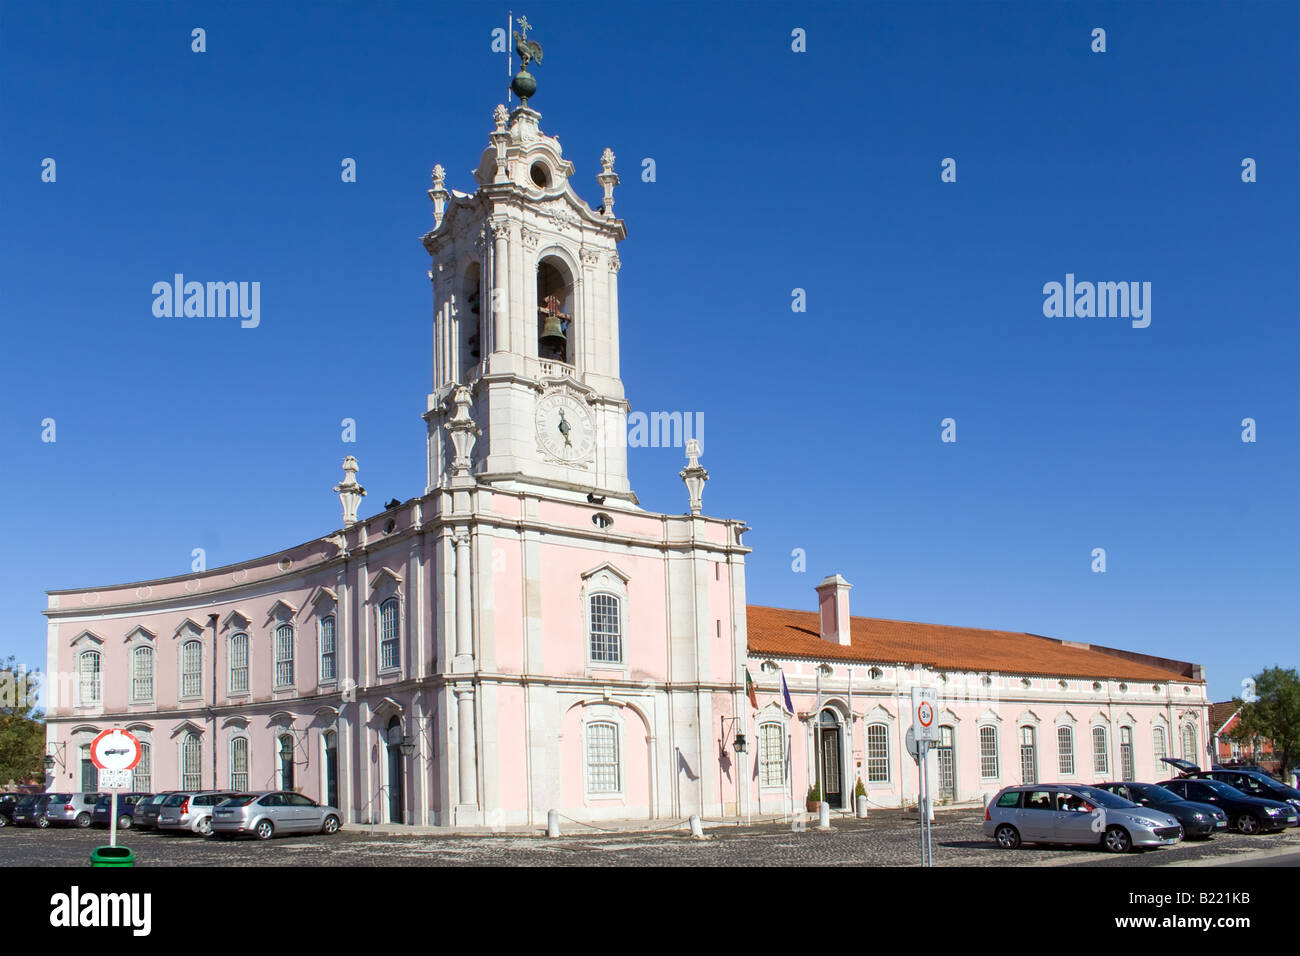 D. Maria I Historical Hotel in Queluz, Lisbon (Portugal). This luxury hotel is built in the former Royal Guard Headquarters. Stock Photo